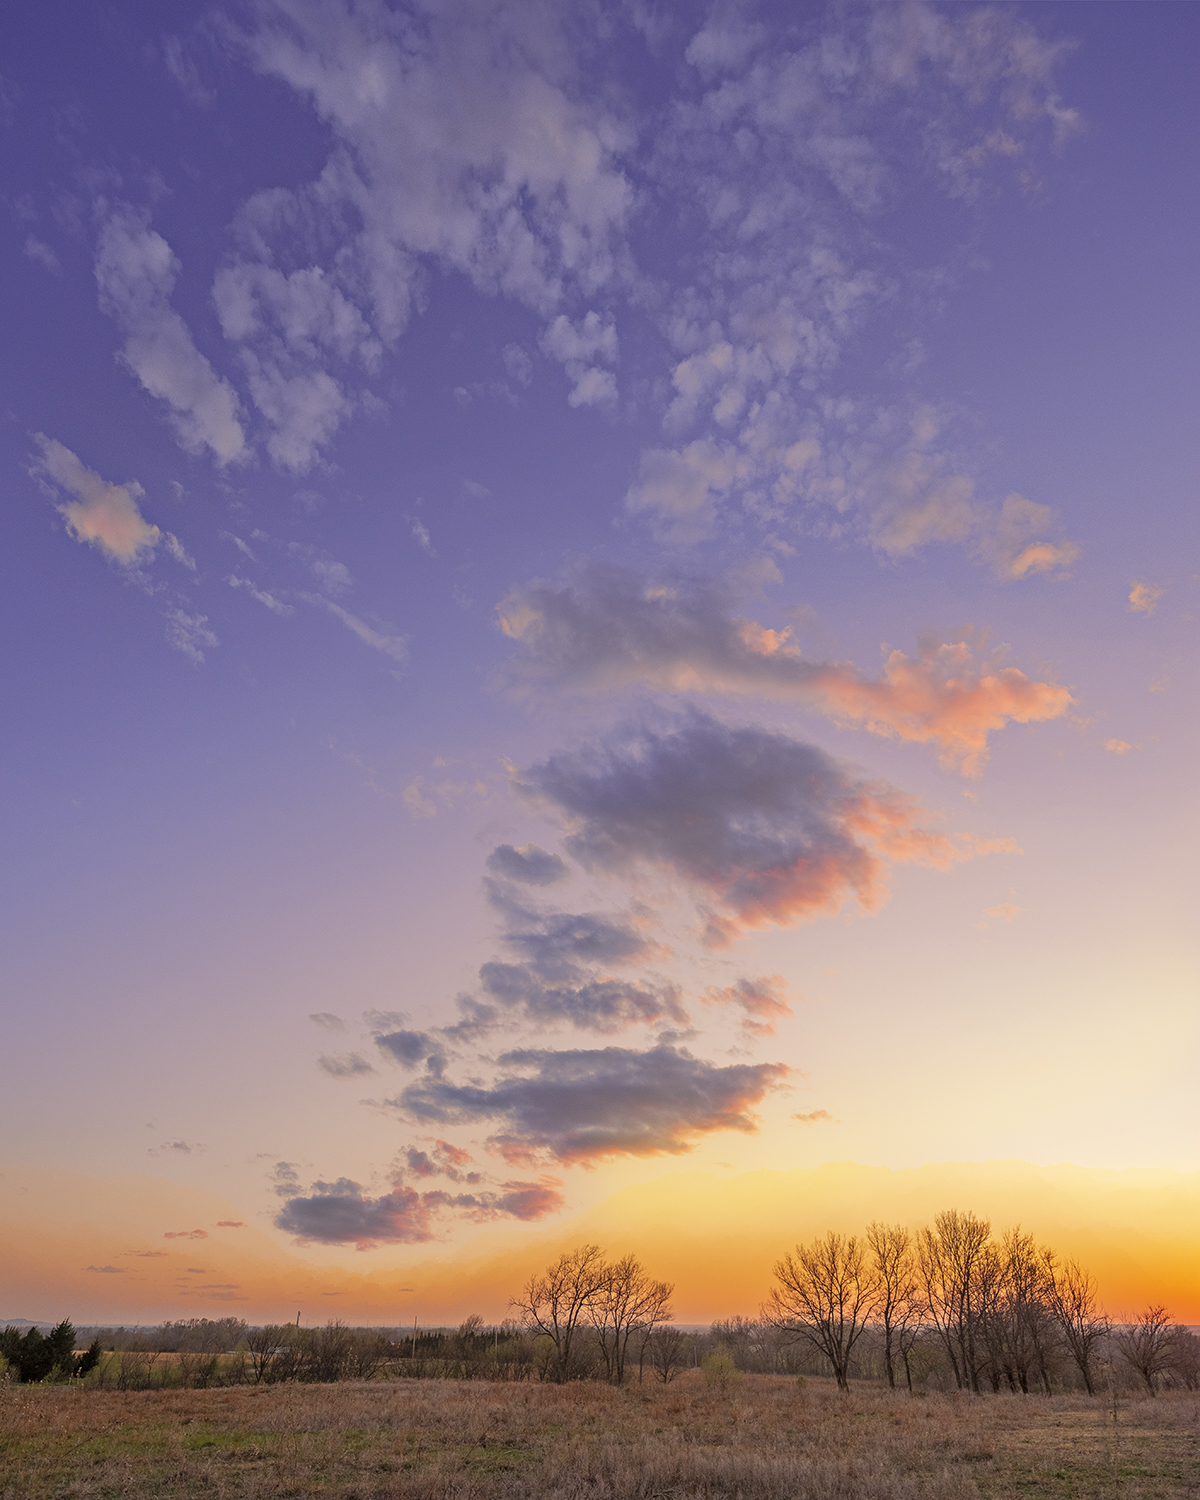 Clouds Sunset 1 by  George Jerkovich - Masterpiece Online